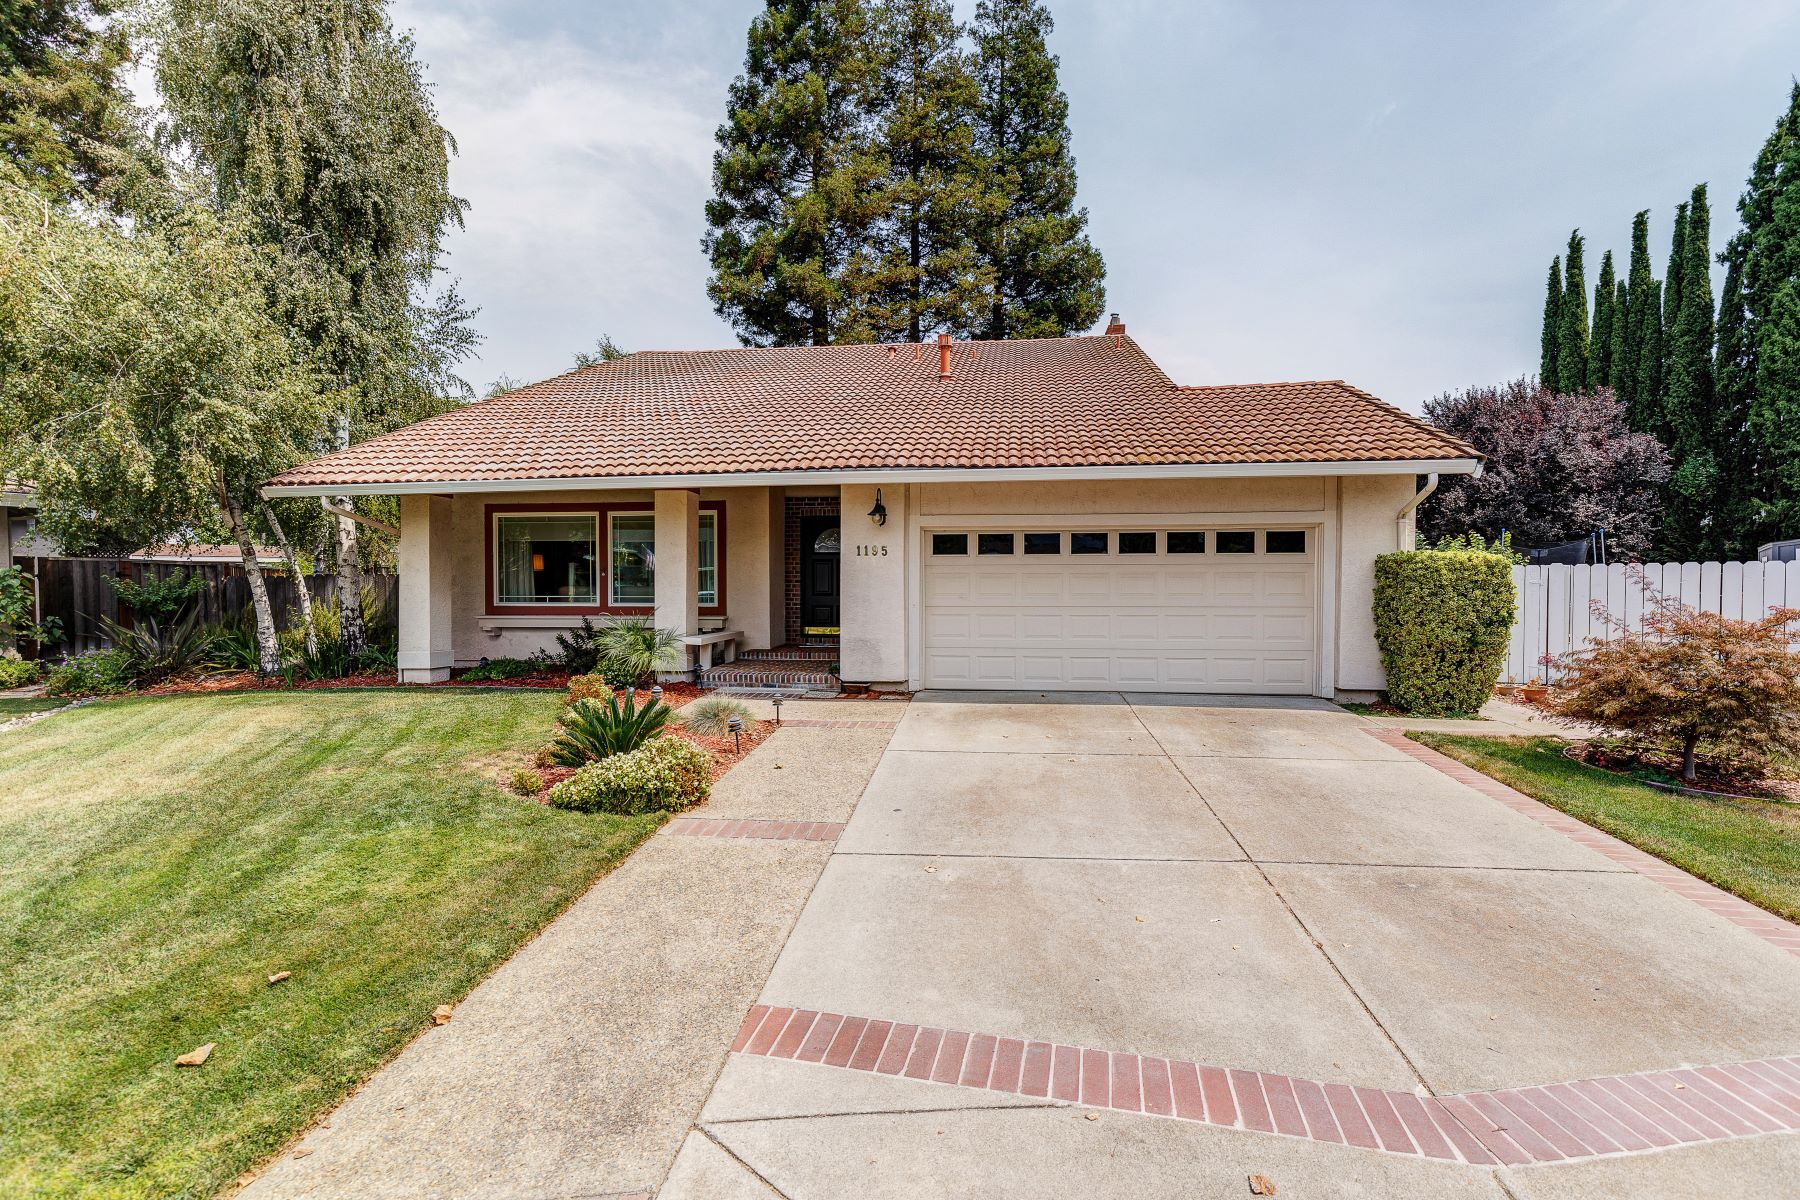 Single Family Homes for Active at 1195 Autumn Court, Pleasanton, CA 94566 1195 Autumn Court Pleasanton, California 94566 United States